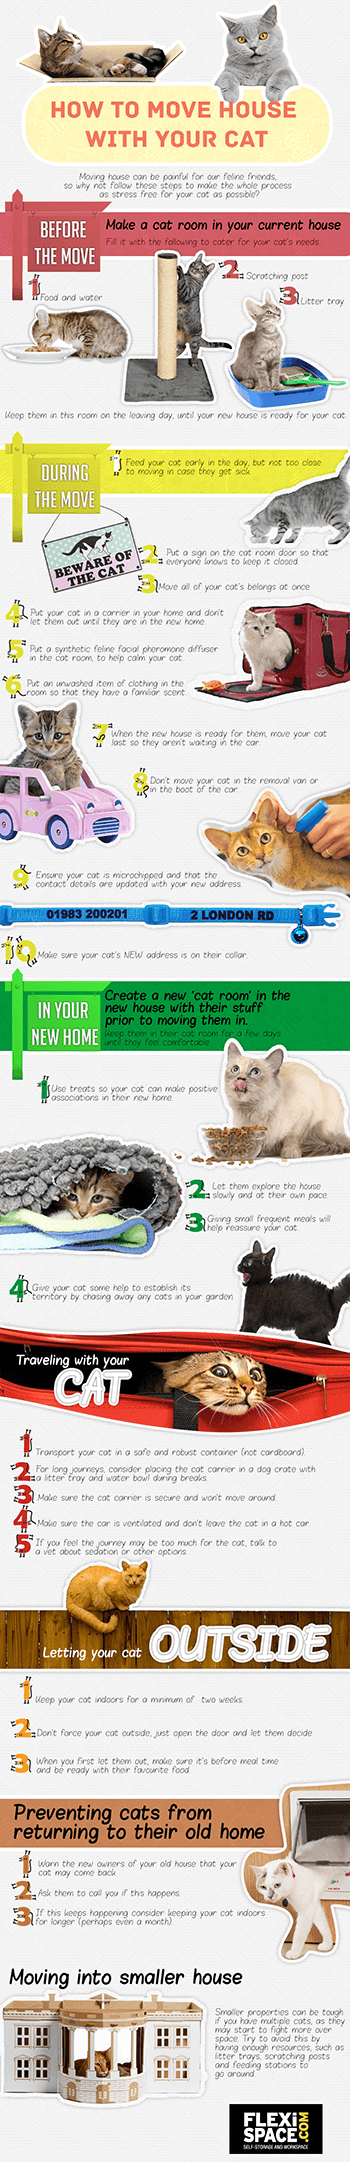 Moving house with your cat